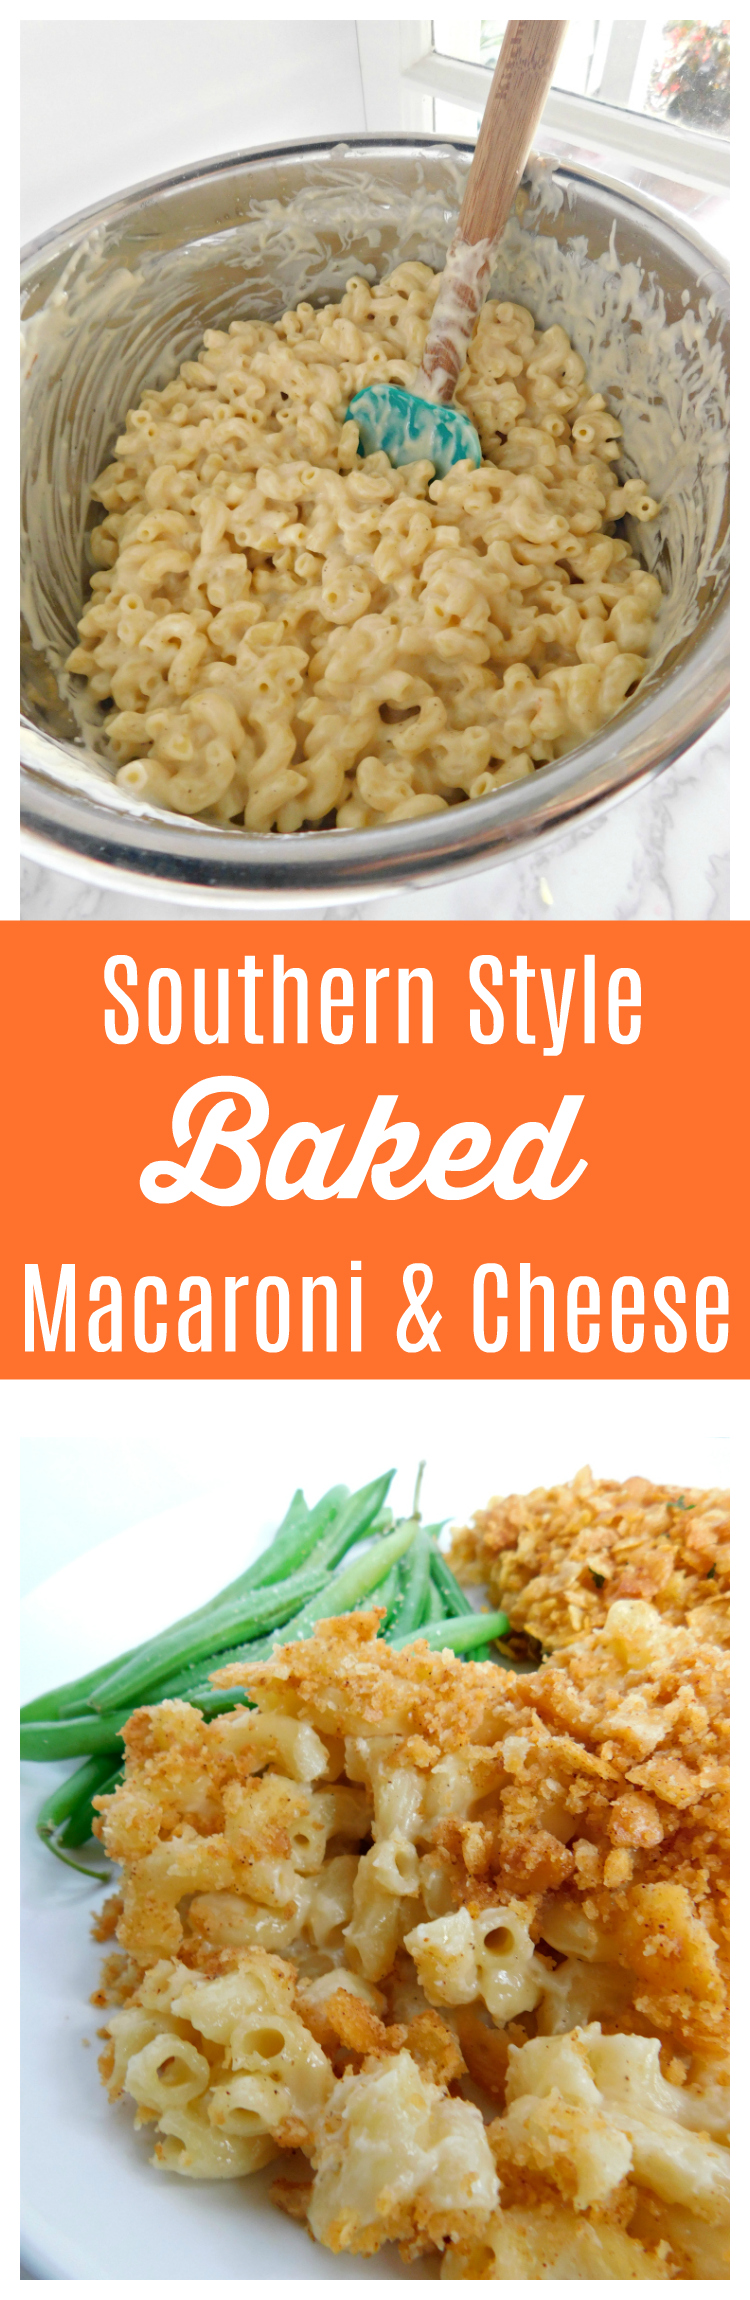 Southern Style Baked Macaroni and Cheese is perfect for dinner, potlucks and holidays. Made with three cheeses, this mac and cheese recipe is creamy and full of flavor!